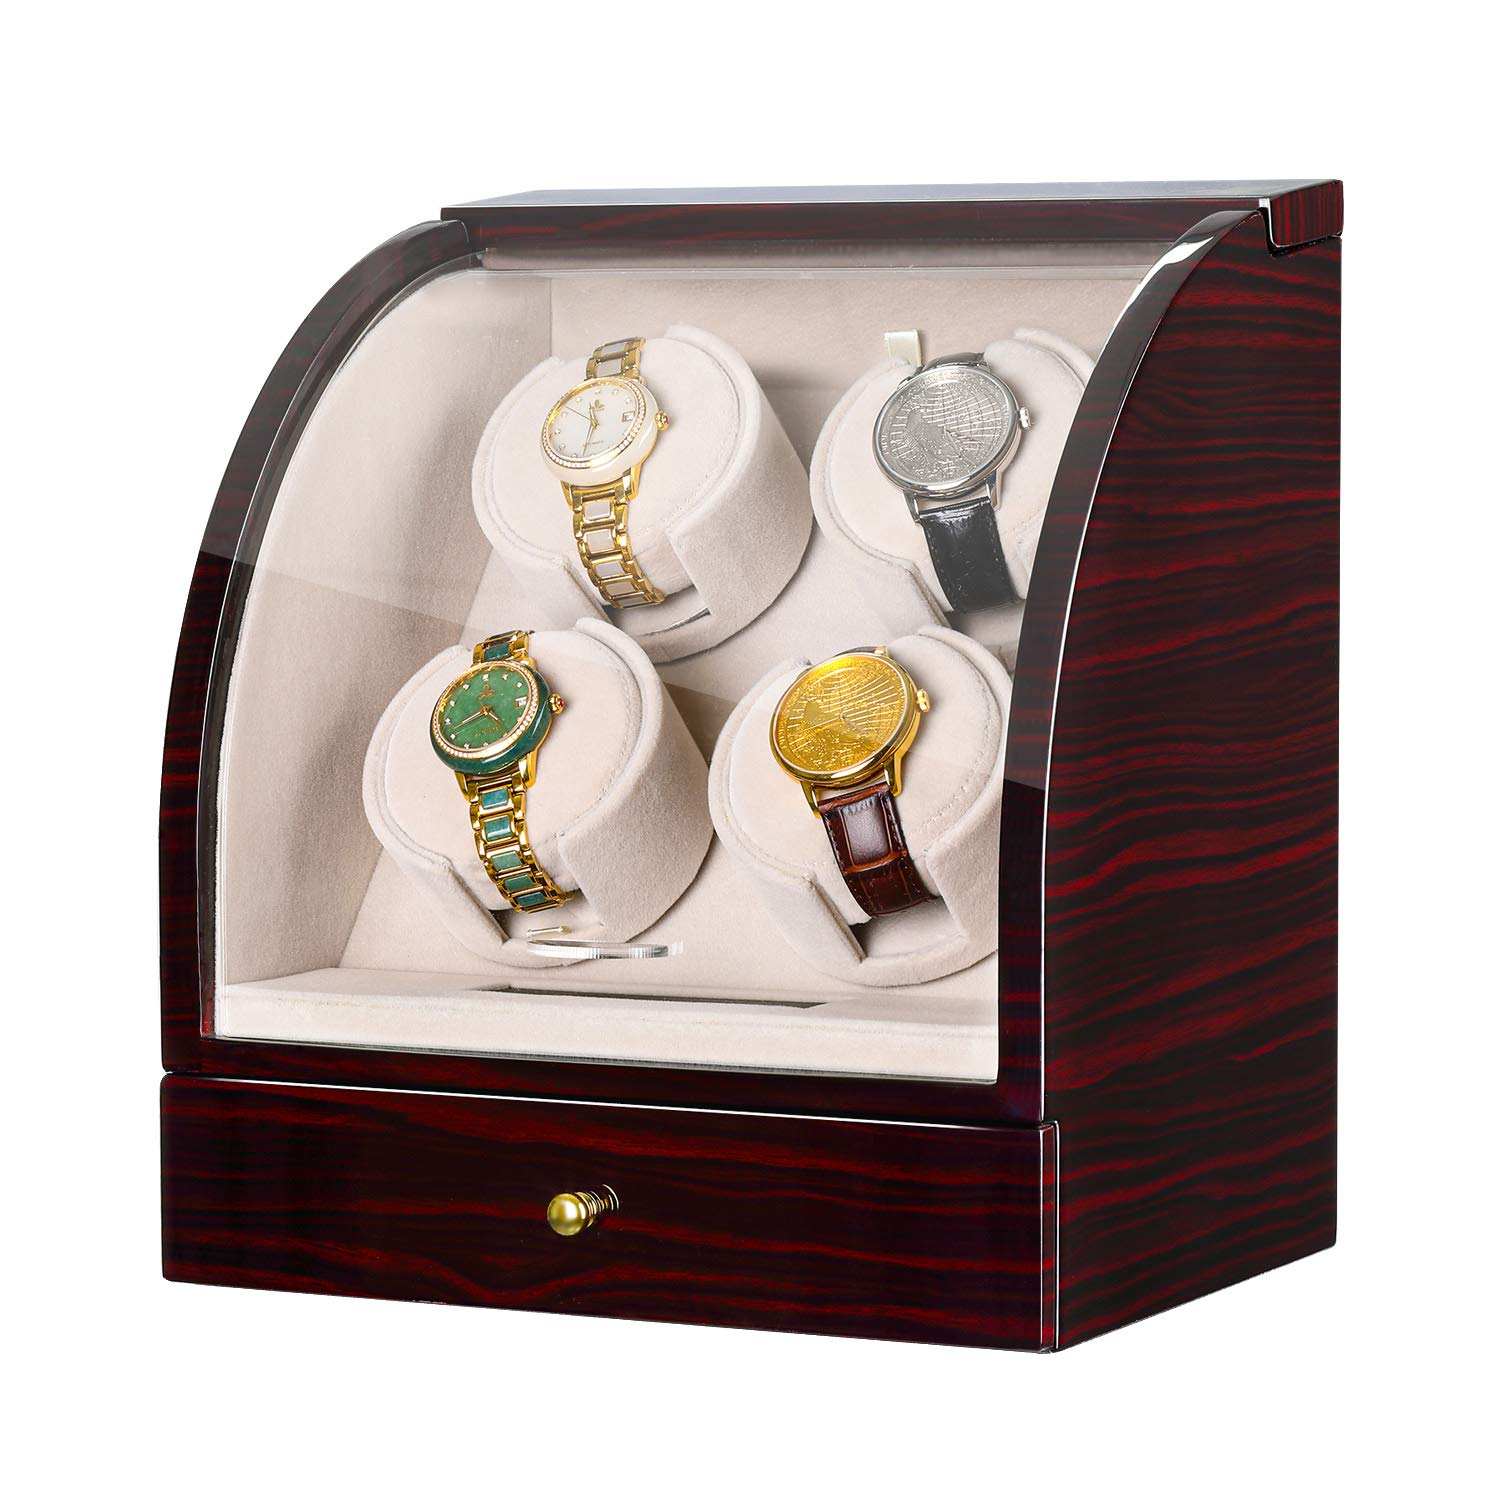 CHIYODA Automatic Quad Watch Winder with Quiet Mabuchi Motor, LCD Digital Touch Display, 3 Jewelry Storage by CHIYODA